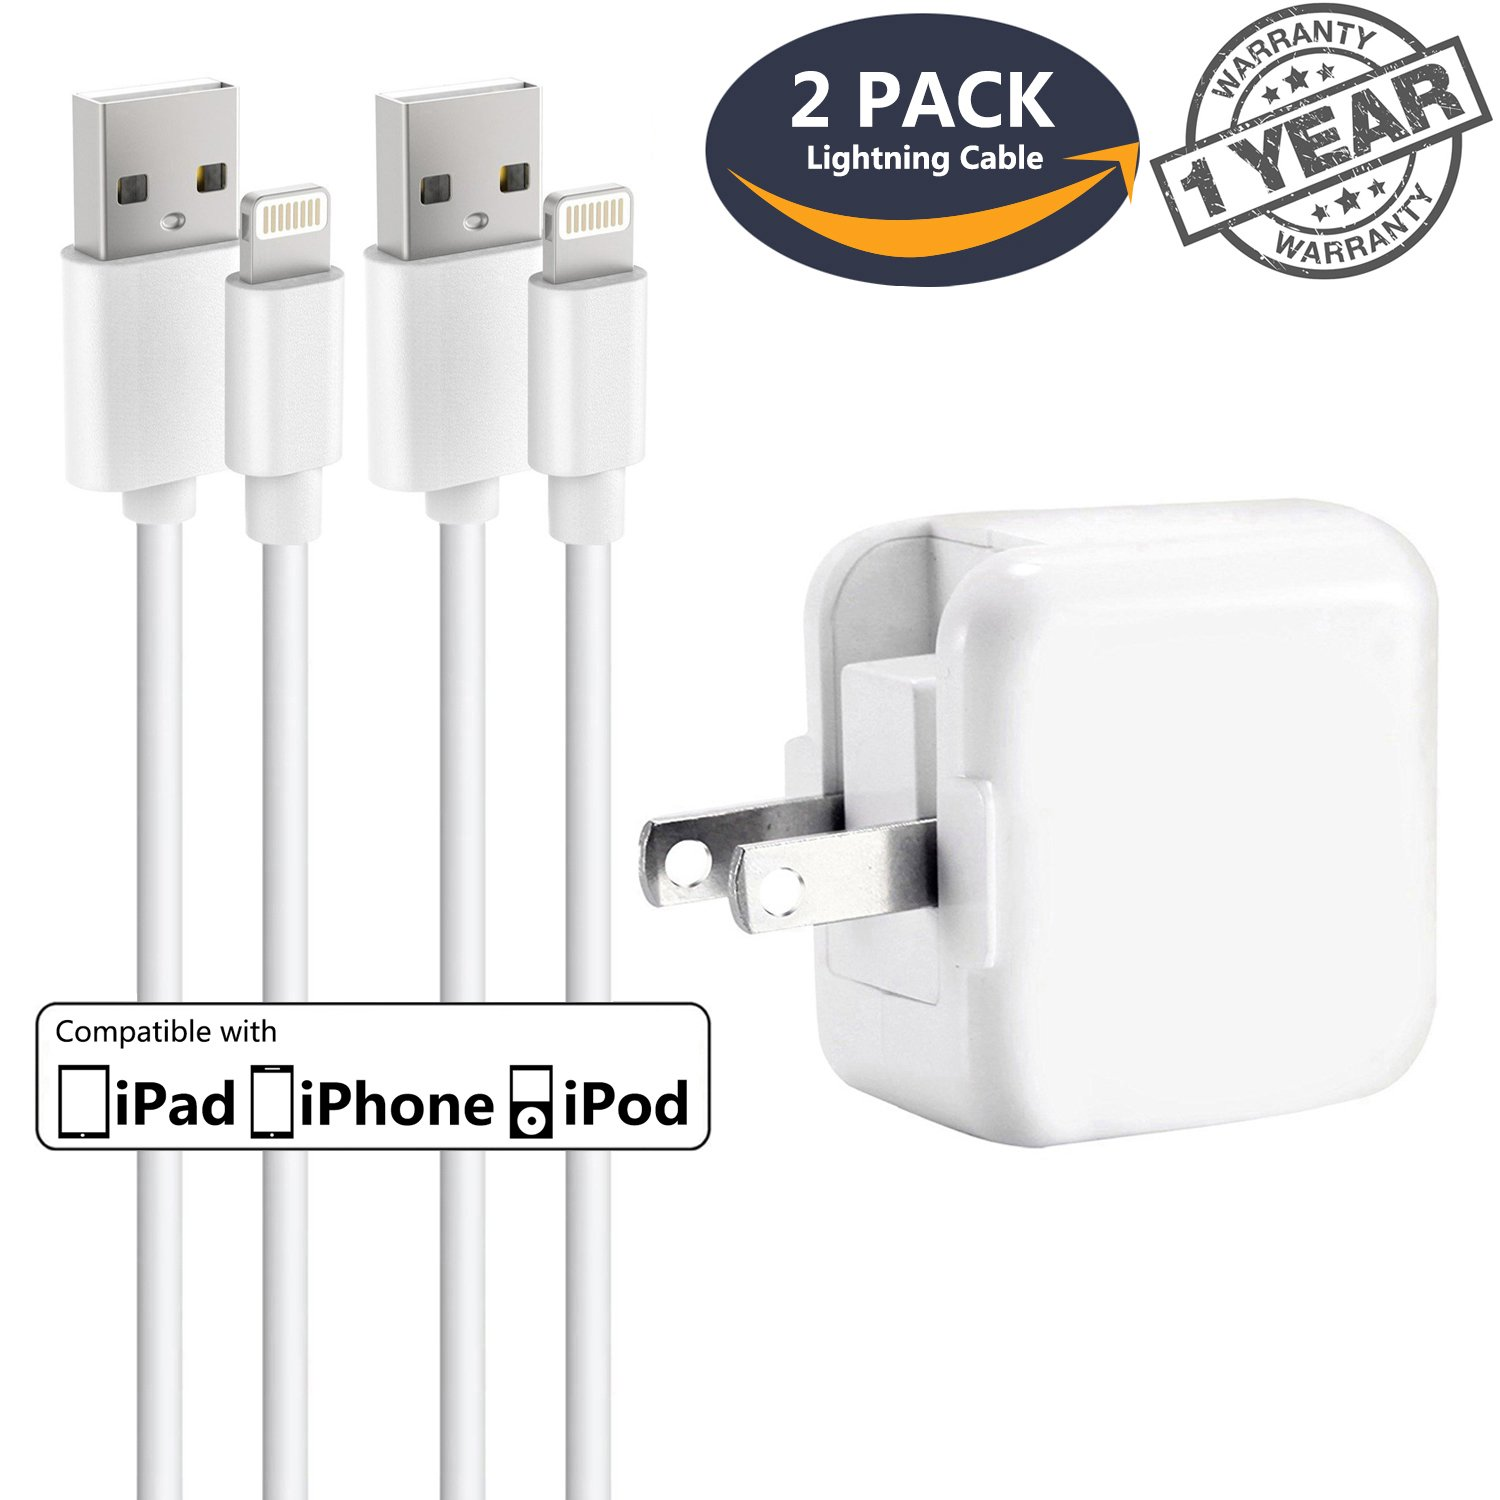 iPhone Charger iPad Charger,Panmy 2.4A 12W USB Wall Charger Foldable Portable Travel Plug + 2 PACK(3FT) 8-Pin Lightning Cable for iPhone X/8Plus/7Plus/6sPlus/6Plus/8/7/6/6s/SE/5s/5, iPad 4/Mini/Pro